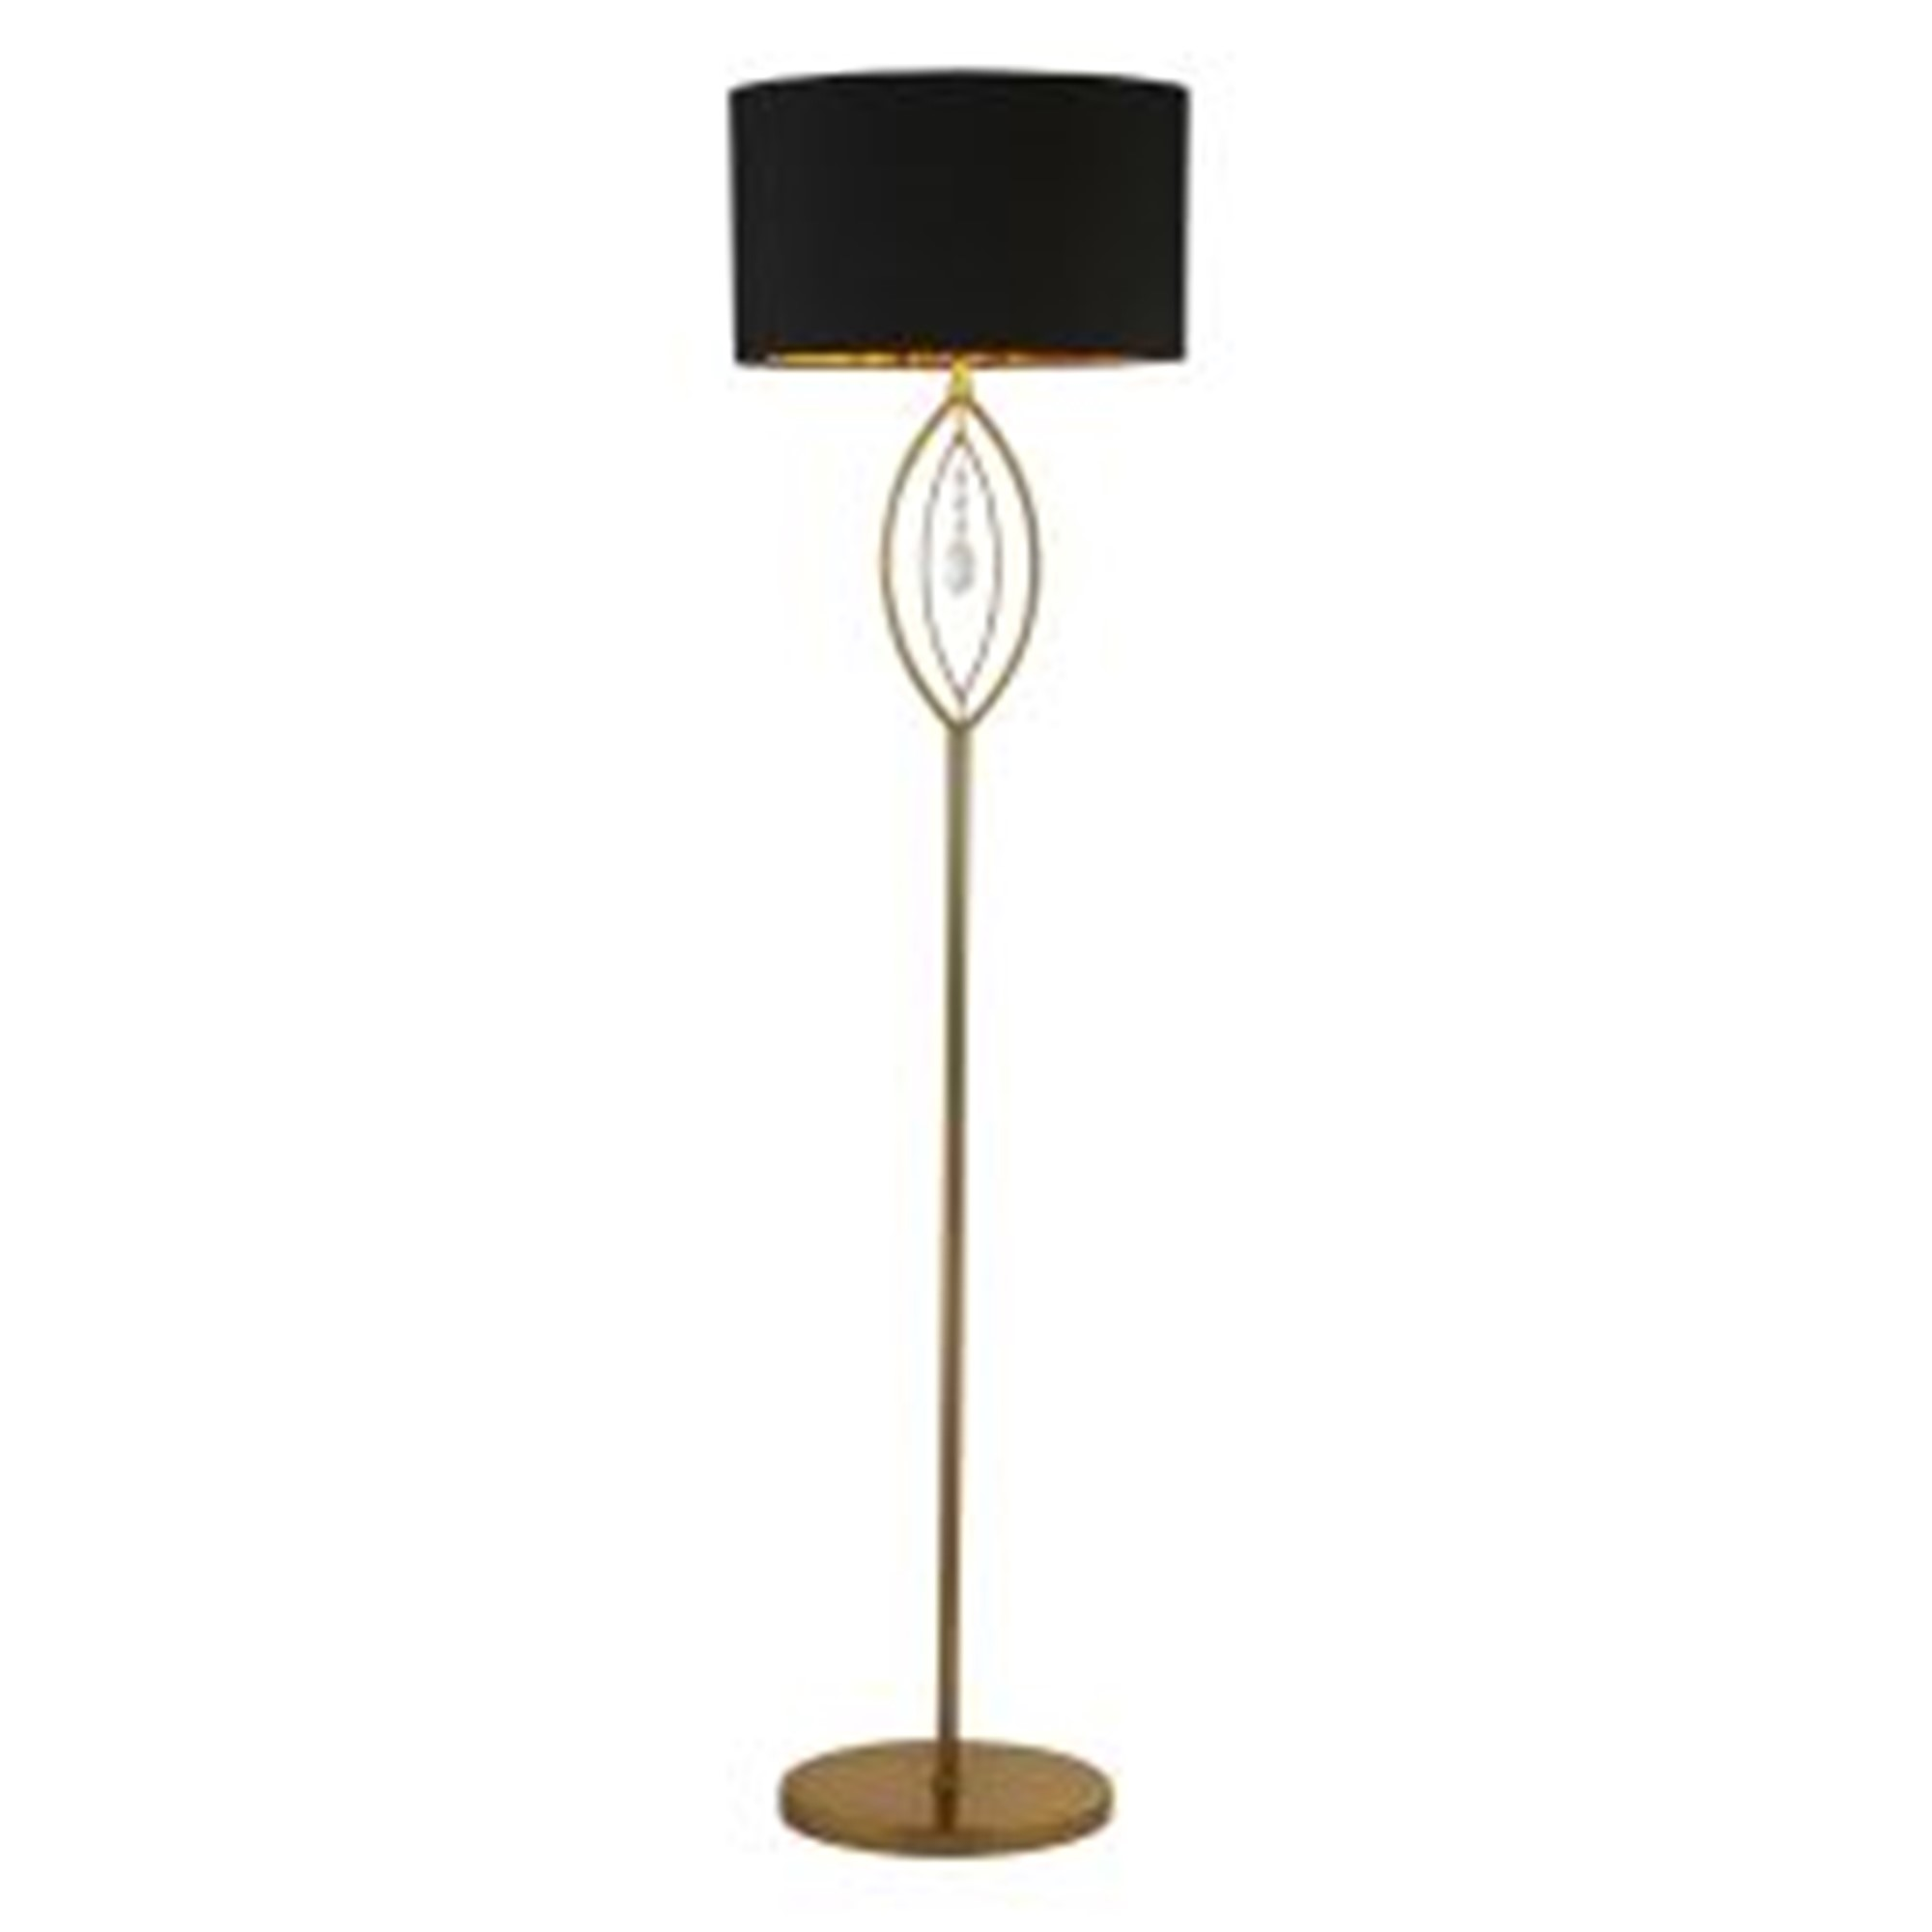 Crown Floor Lamp Gold Bulb Not Included Roomes Furniture Interiors Make Yourself A Home